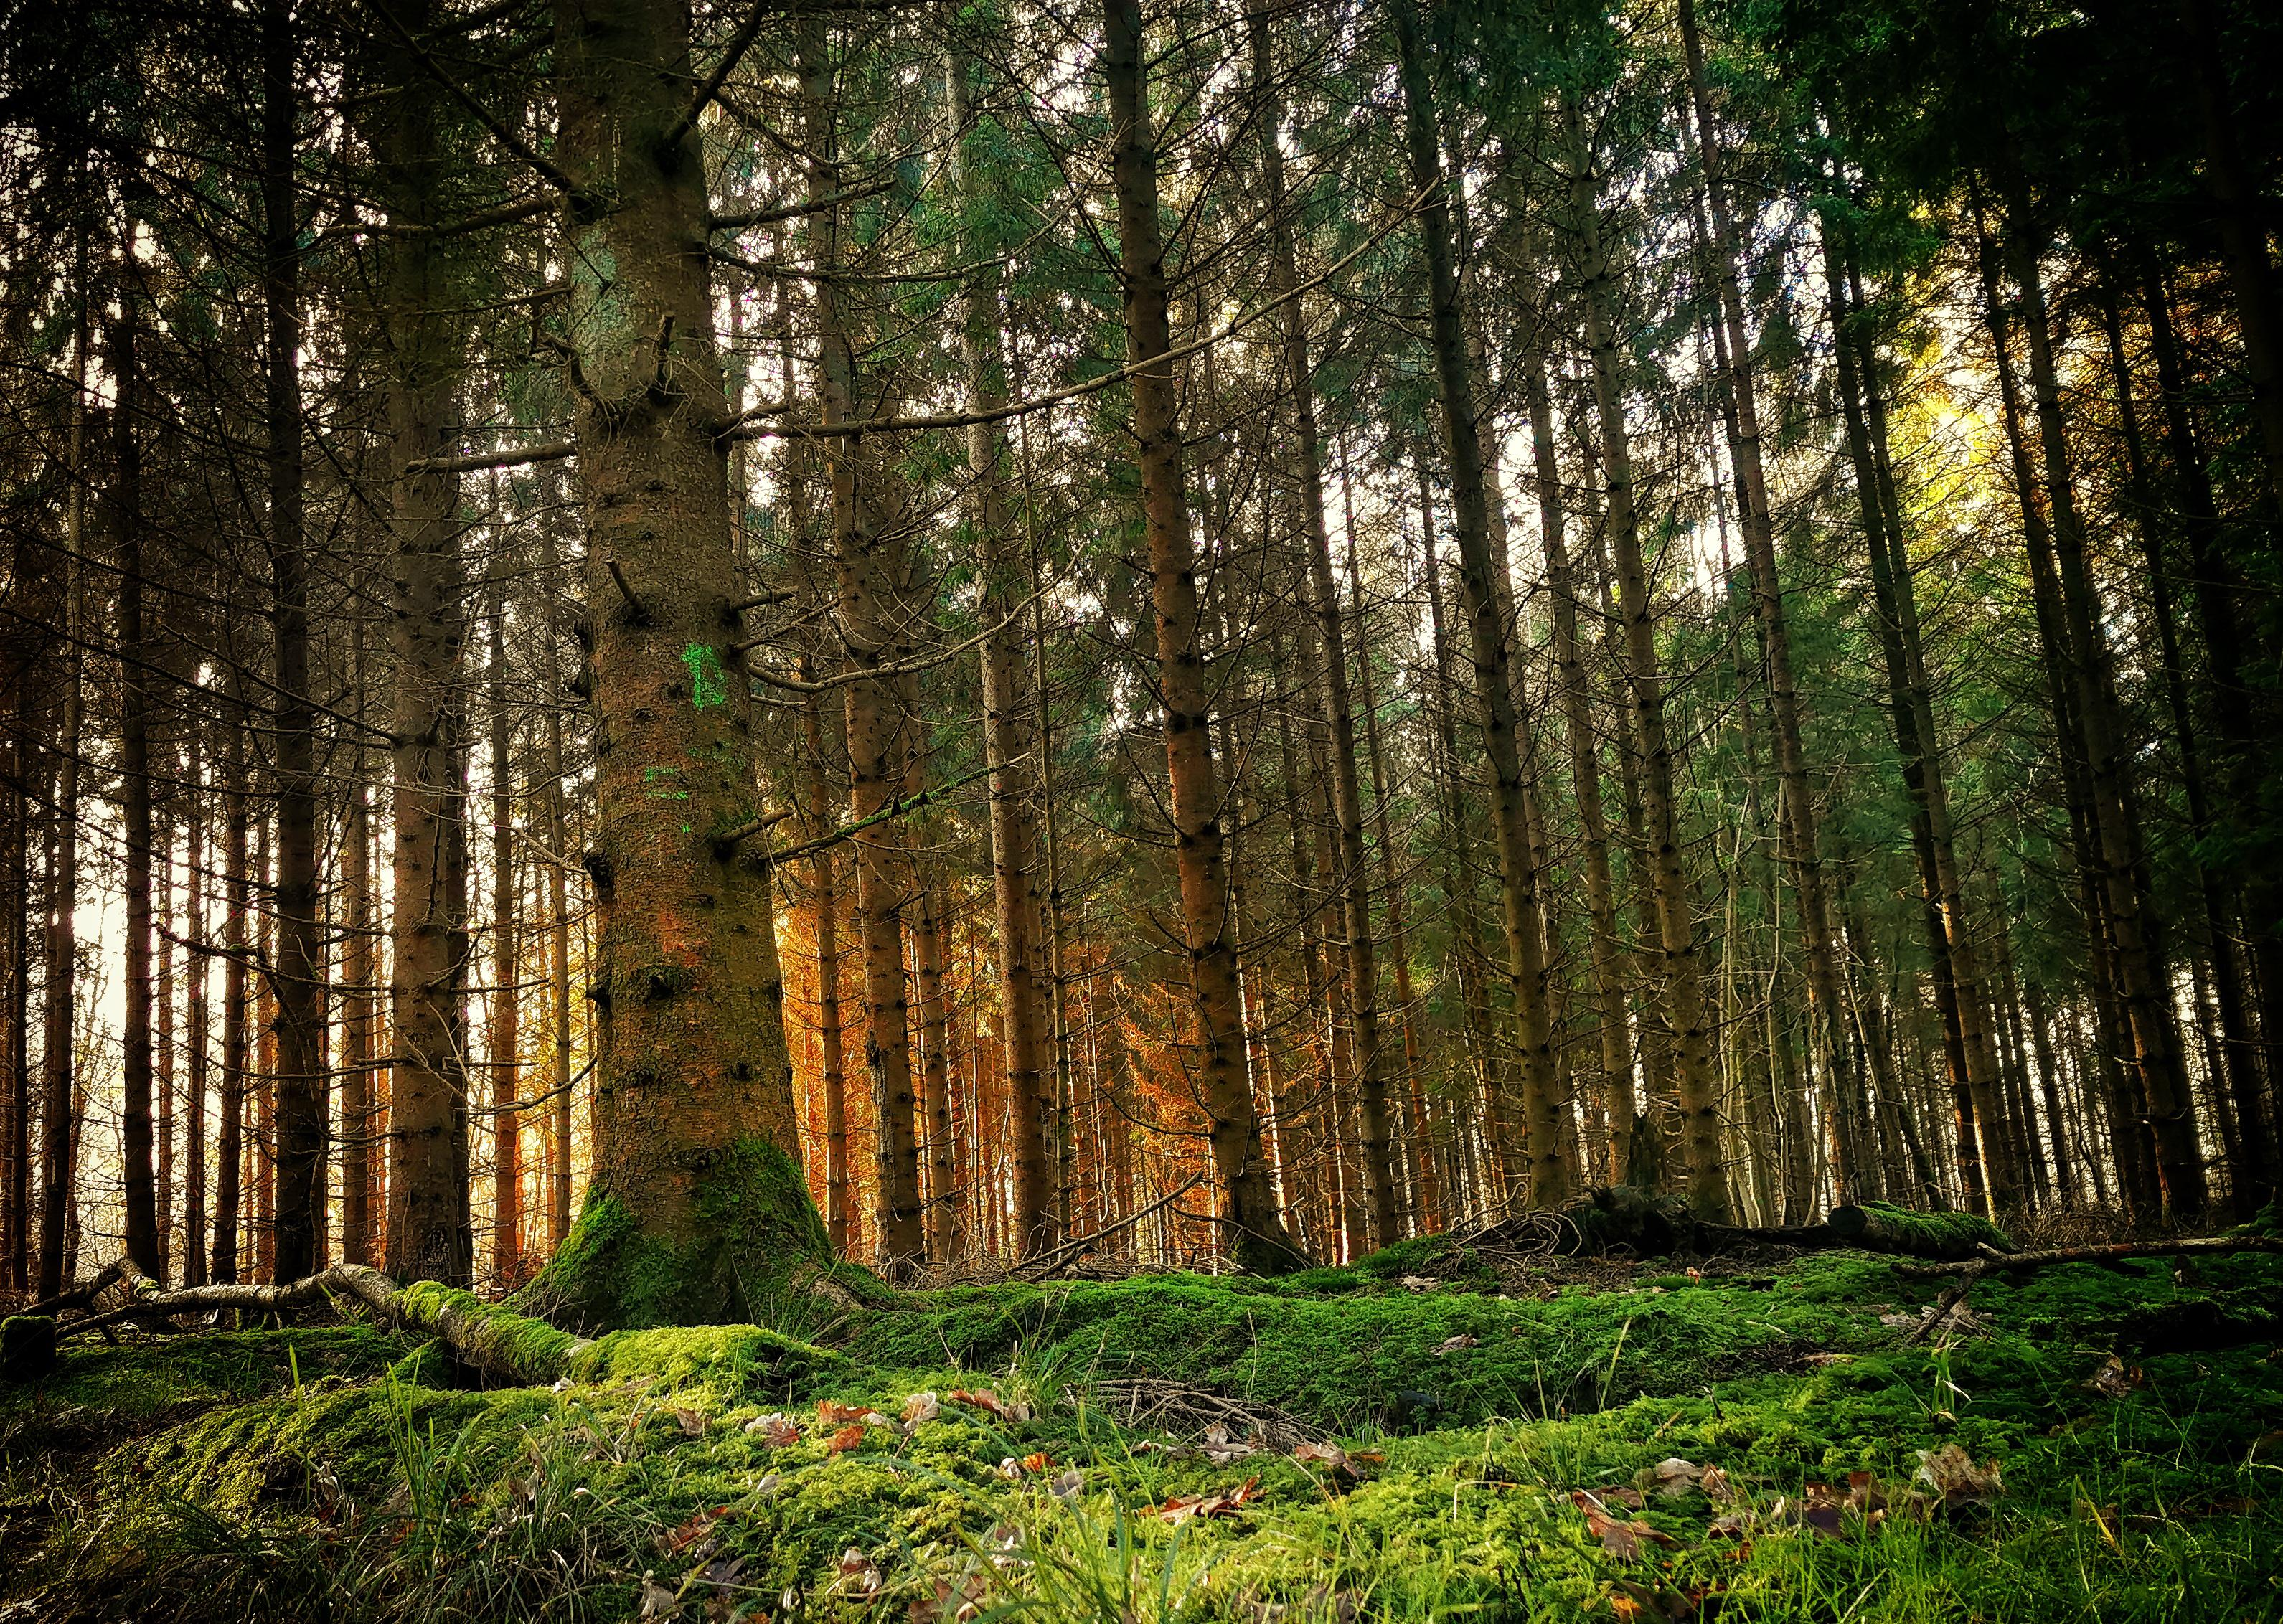 Just A Very Random Forest In The Uk Wallpaper Forest 4k Ultra Hd 3182x2264 Download Hd Wallpaper Wallpapertip